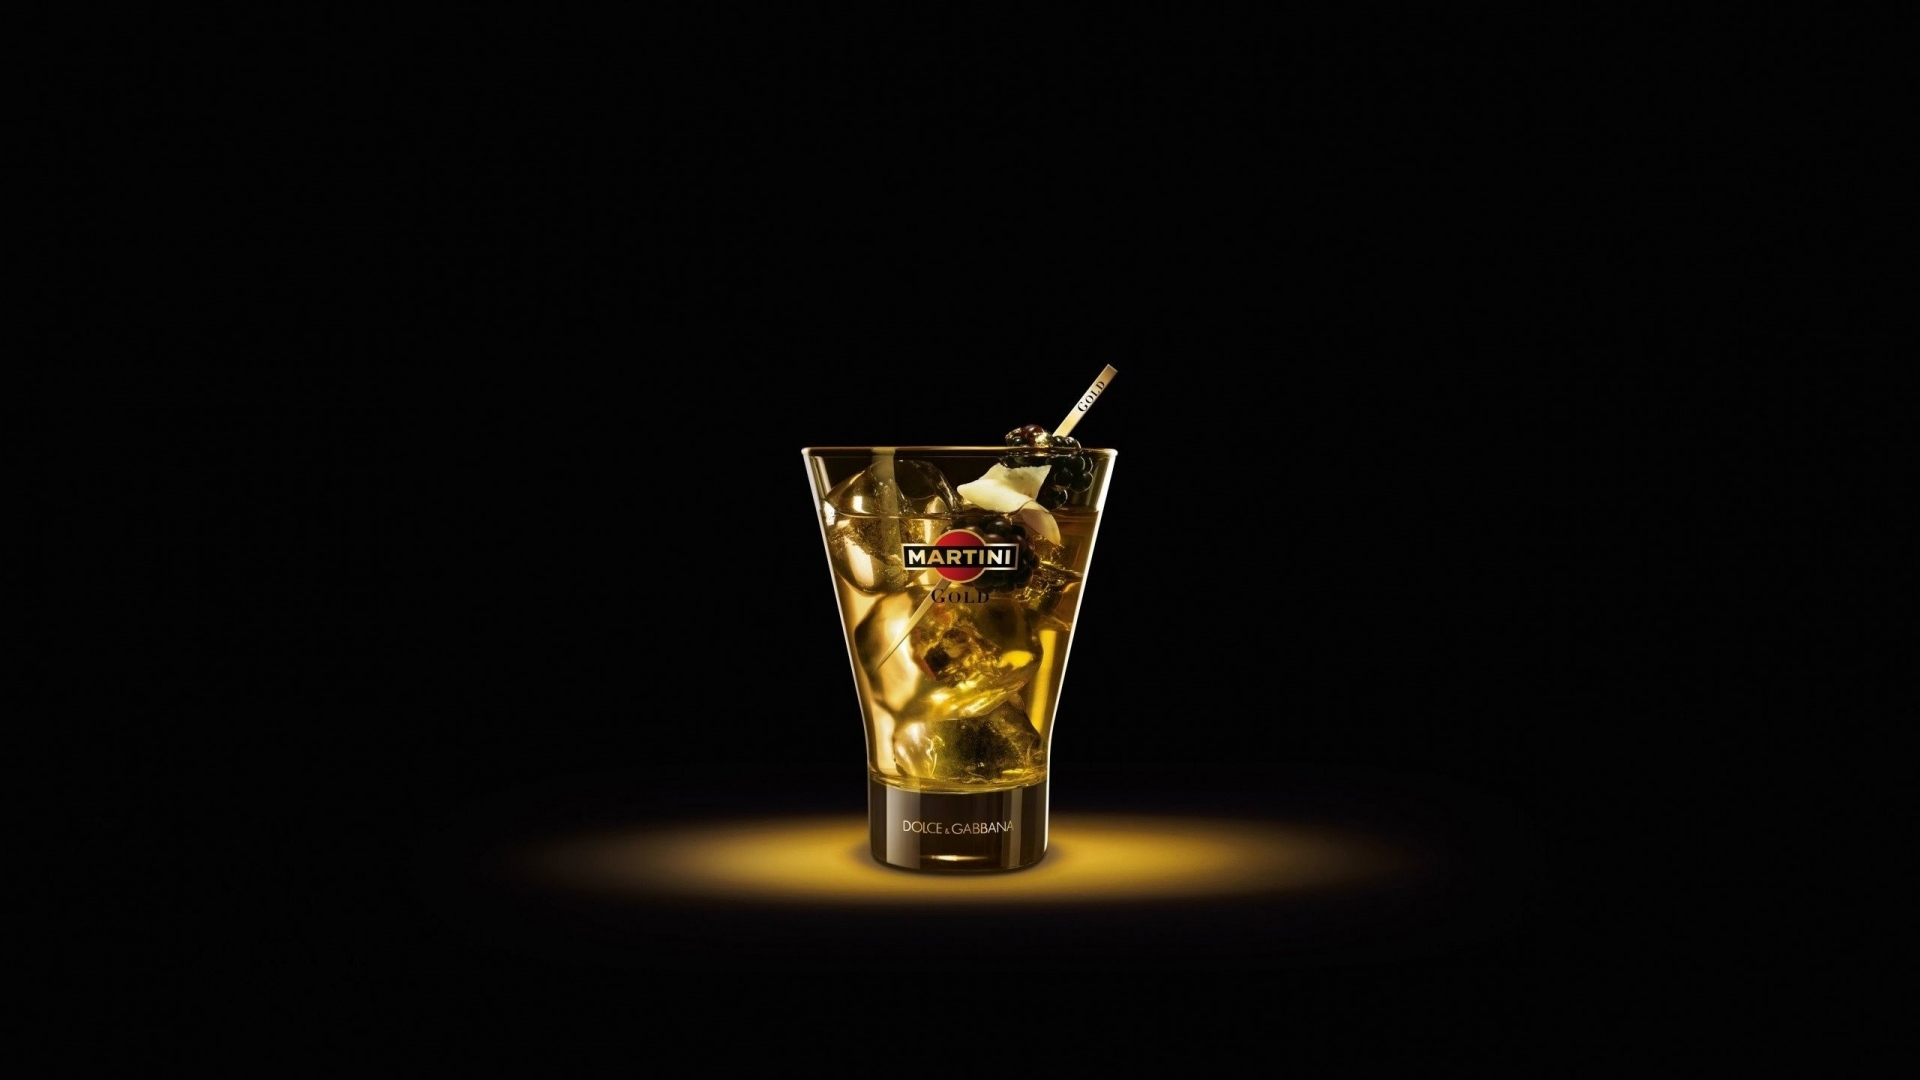 Alcohol Bottles Wallpapers Hd Free Download Green Label Whisky